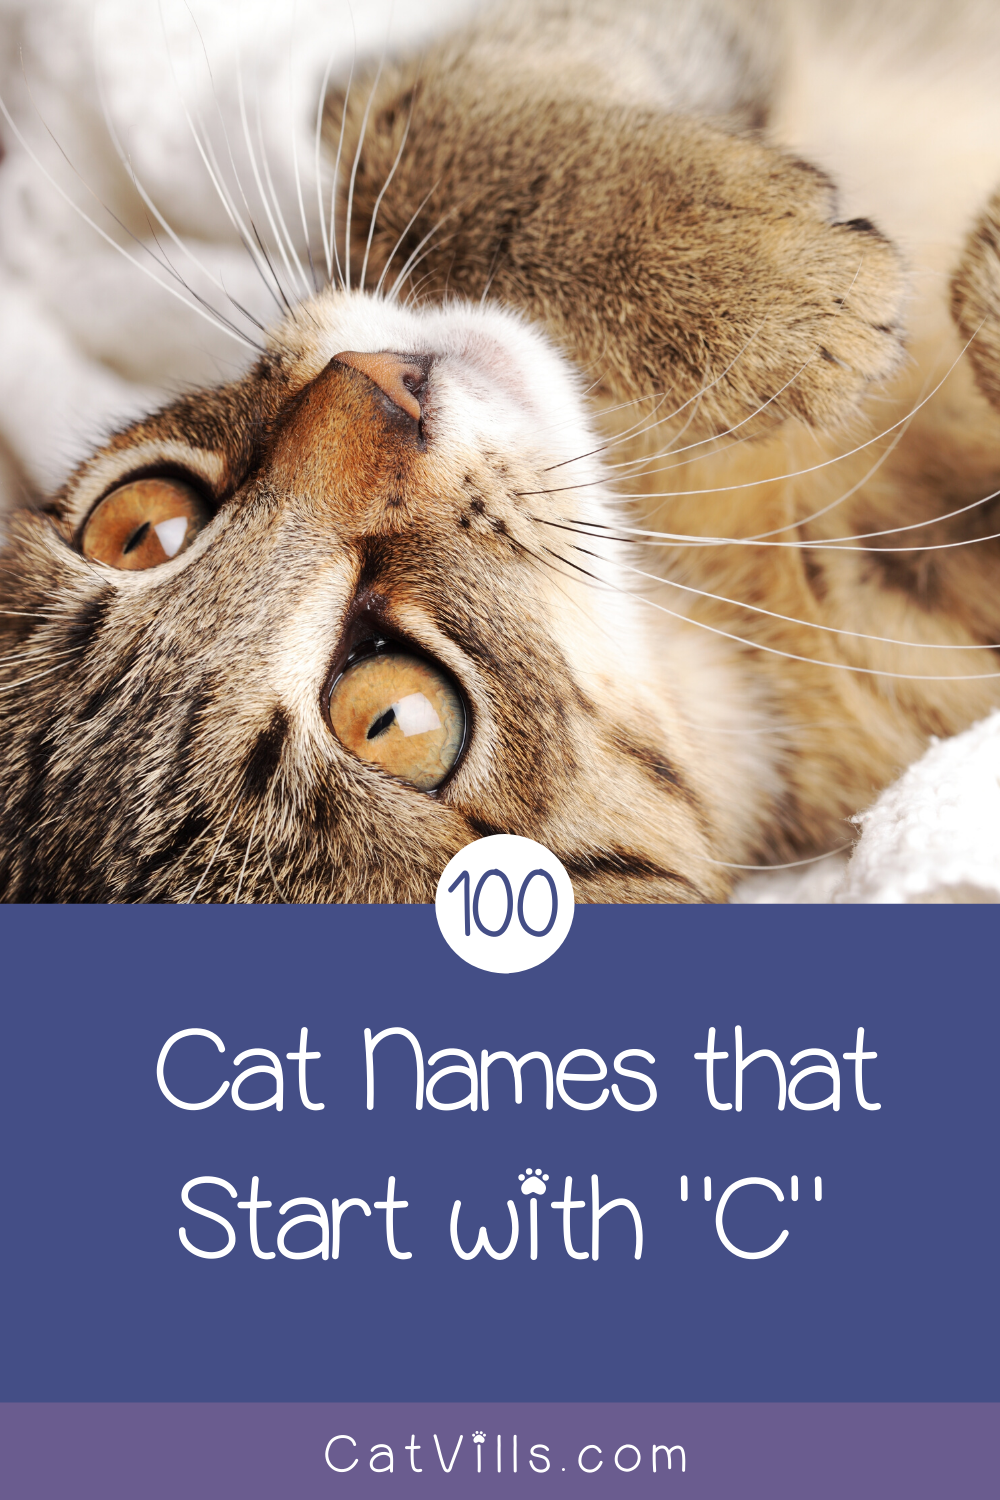 100 Cat Names That Start With C Catvills In 2020 Cat Names Cute Cat Names Boy Cat Names